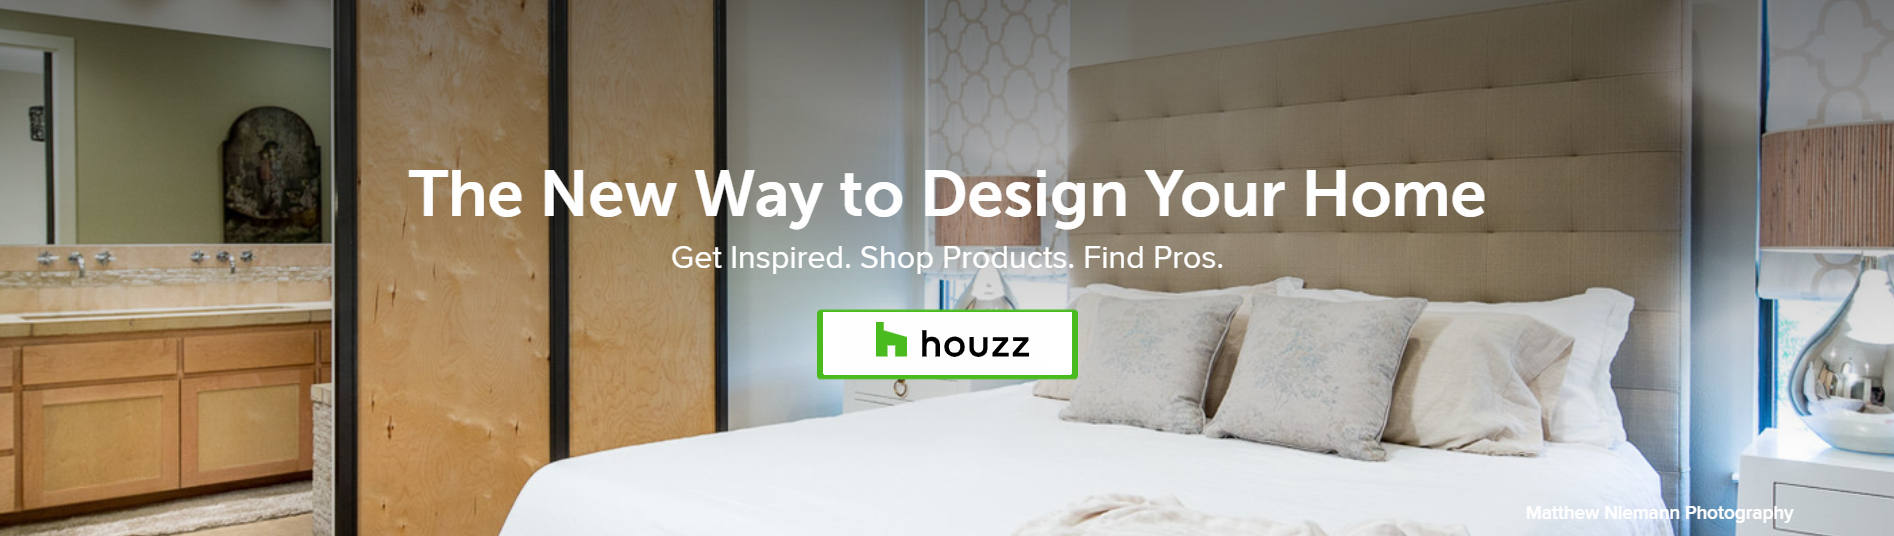 houzz - best side hustles